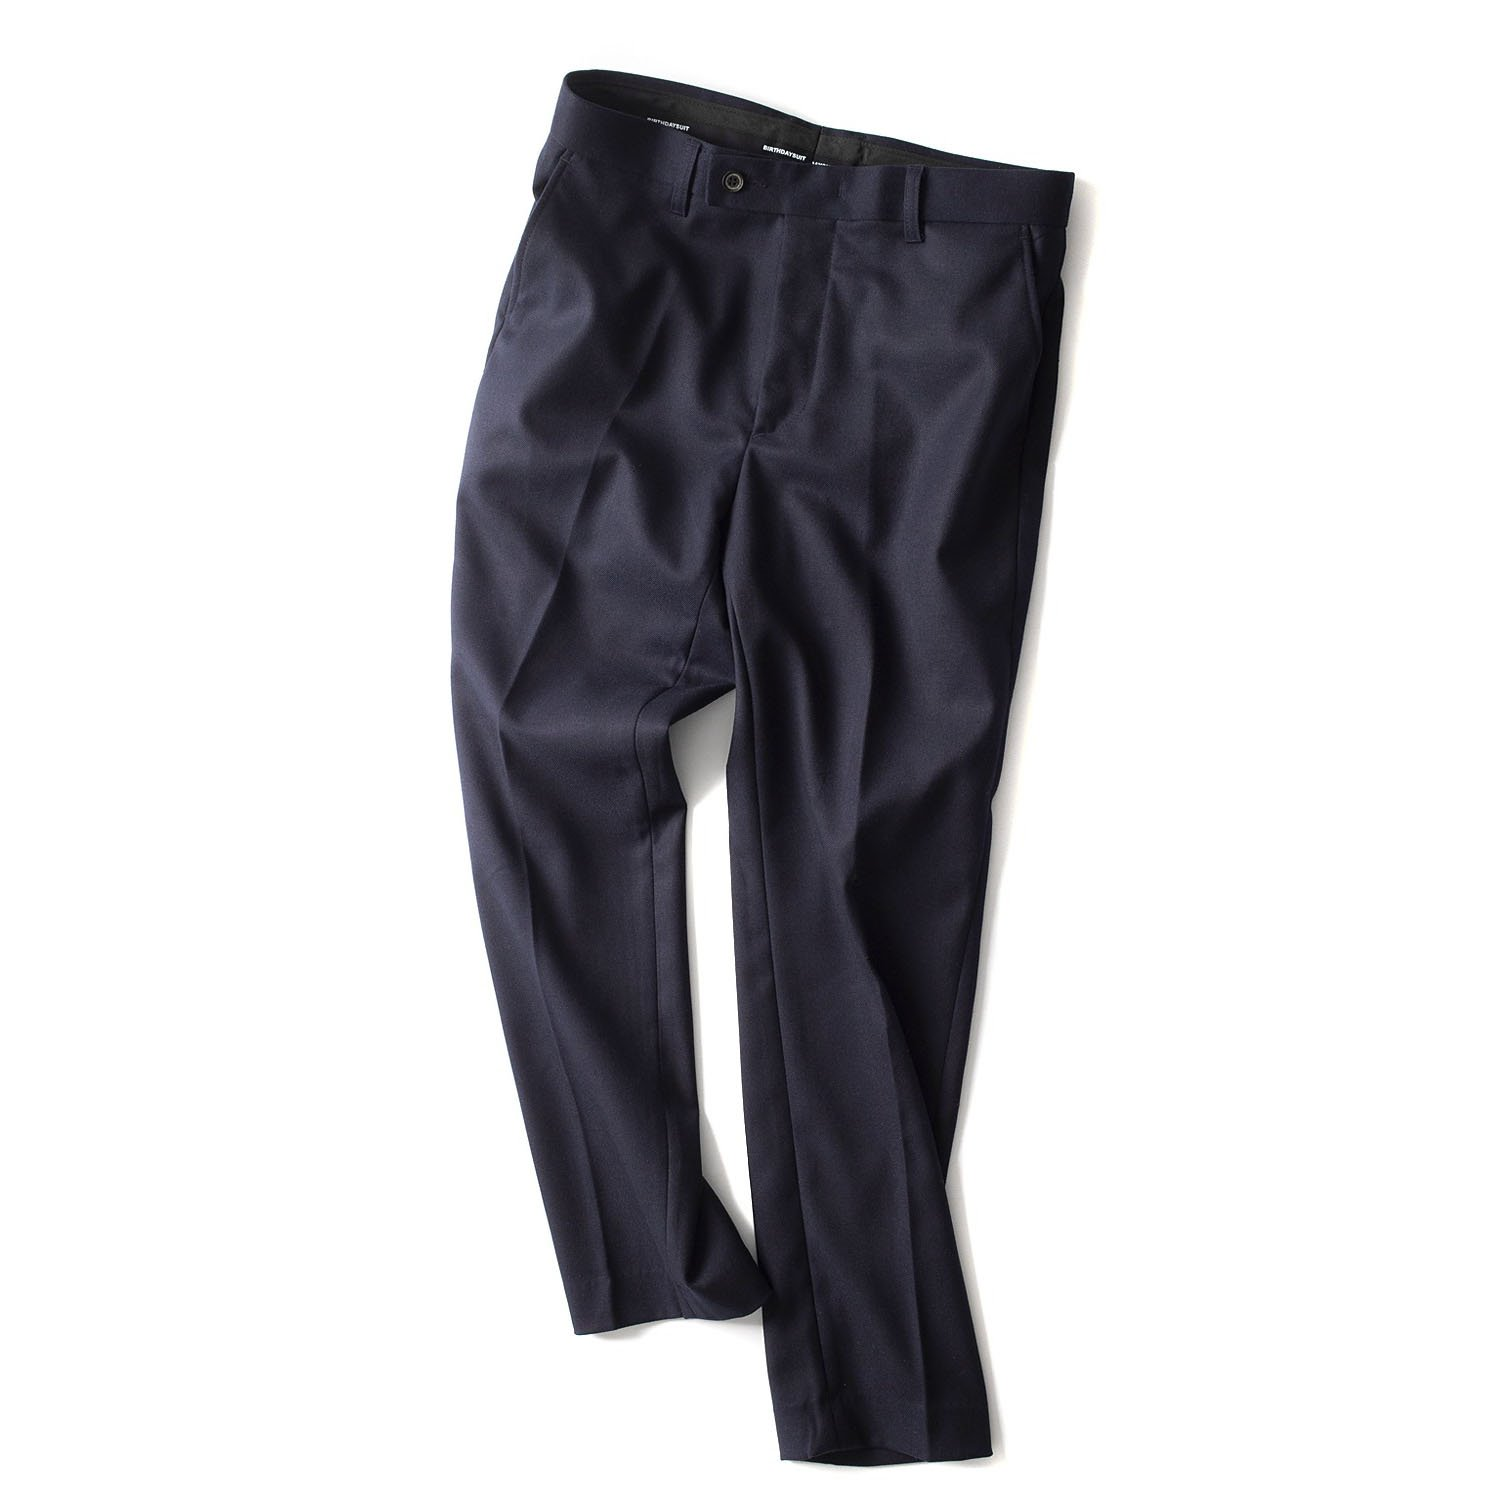 BIRTHDAYSUIT : Daily Suit Pants (Navy)